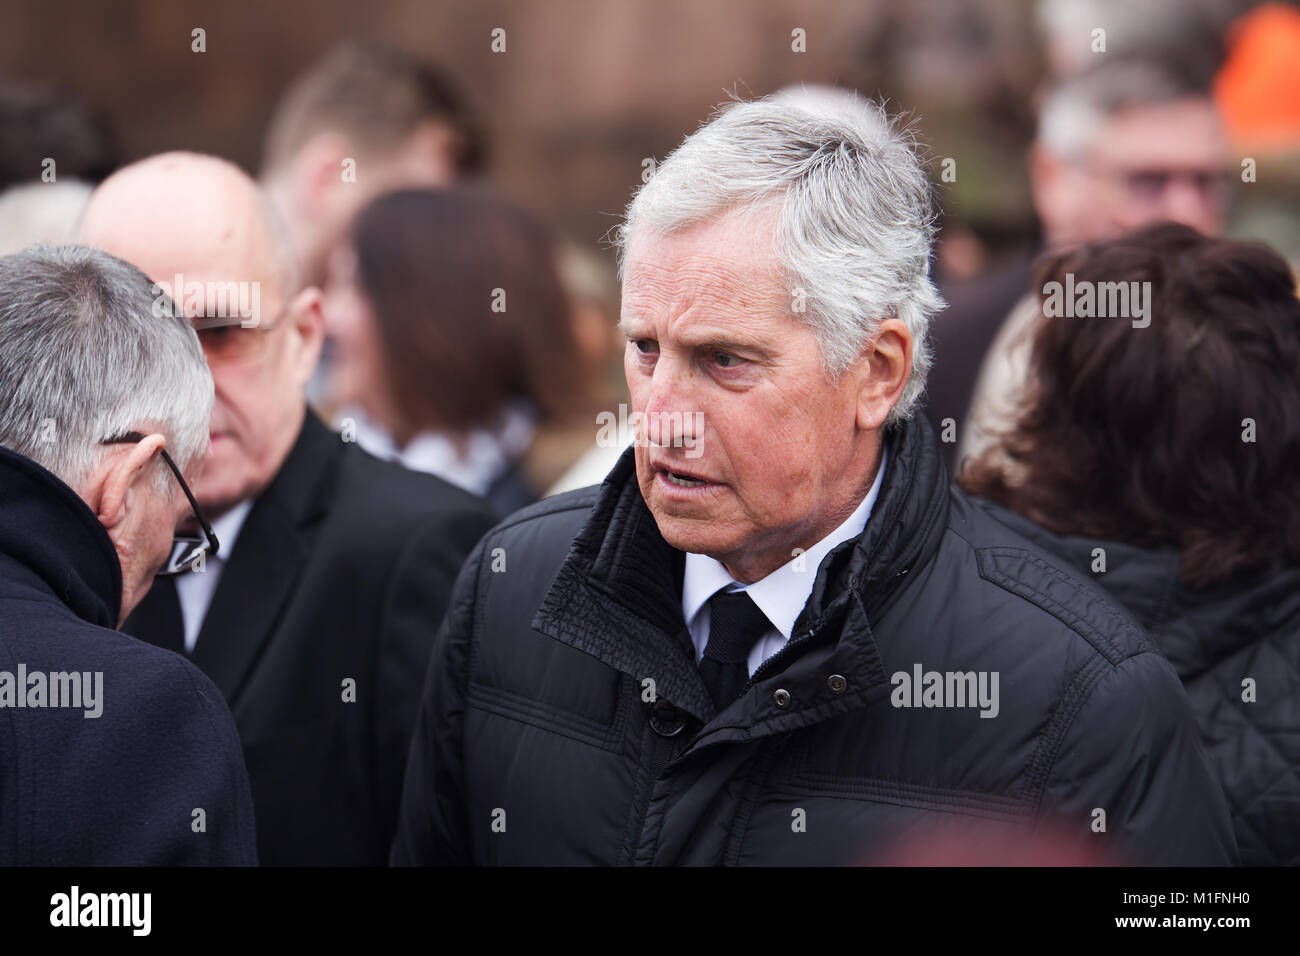 Warrington, Liverpool, UK. 30th Jan, 2018. Ex Liverpool player Ray Clemence attends the funeral of former Liverpool - Stock Image